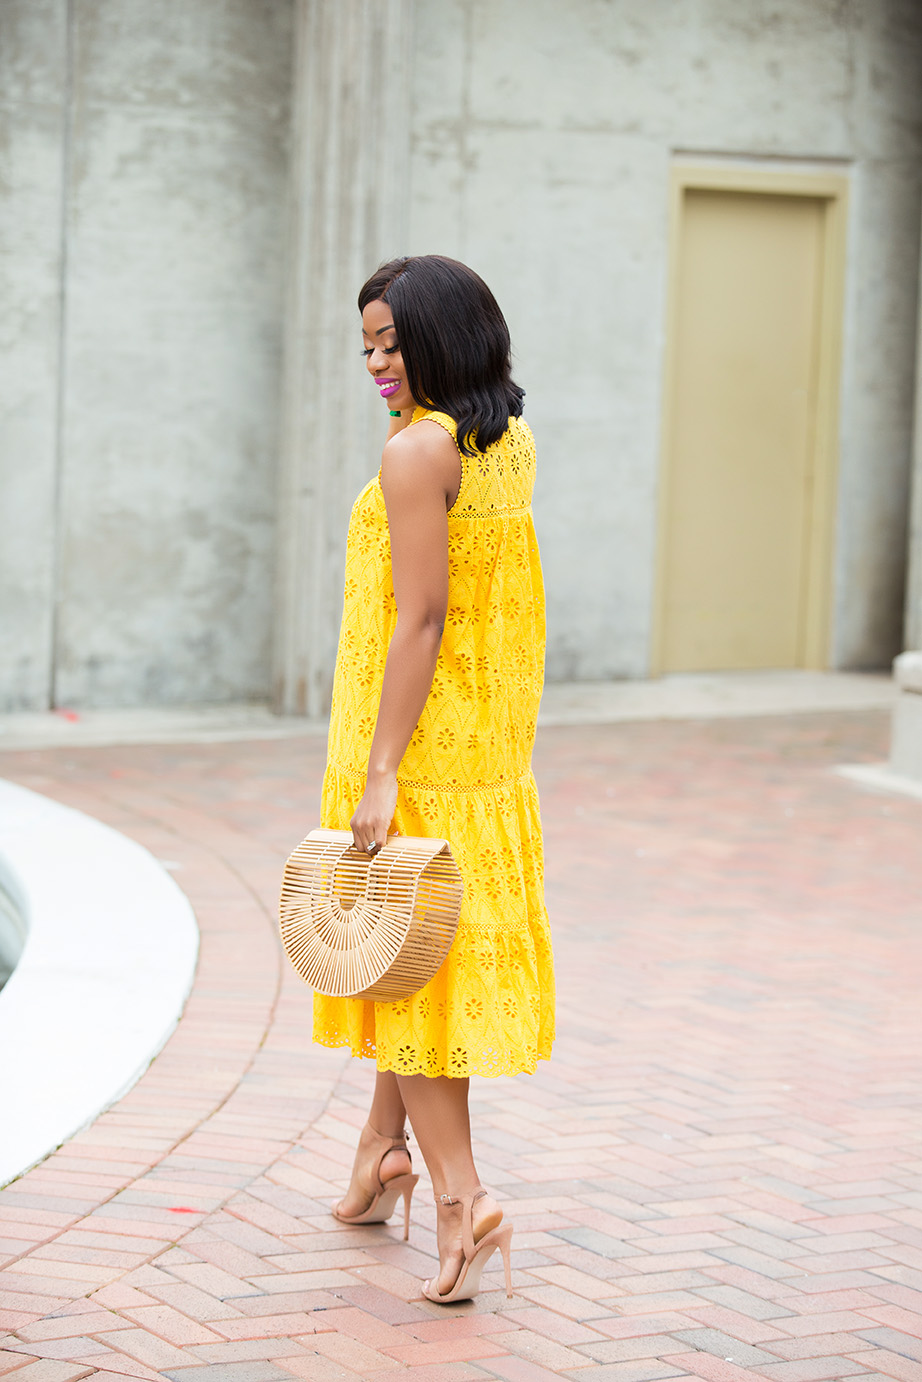 mellow yellow, kate spade eyelet dress, www.jadore-fashion.com